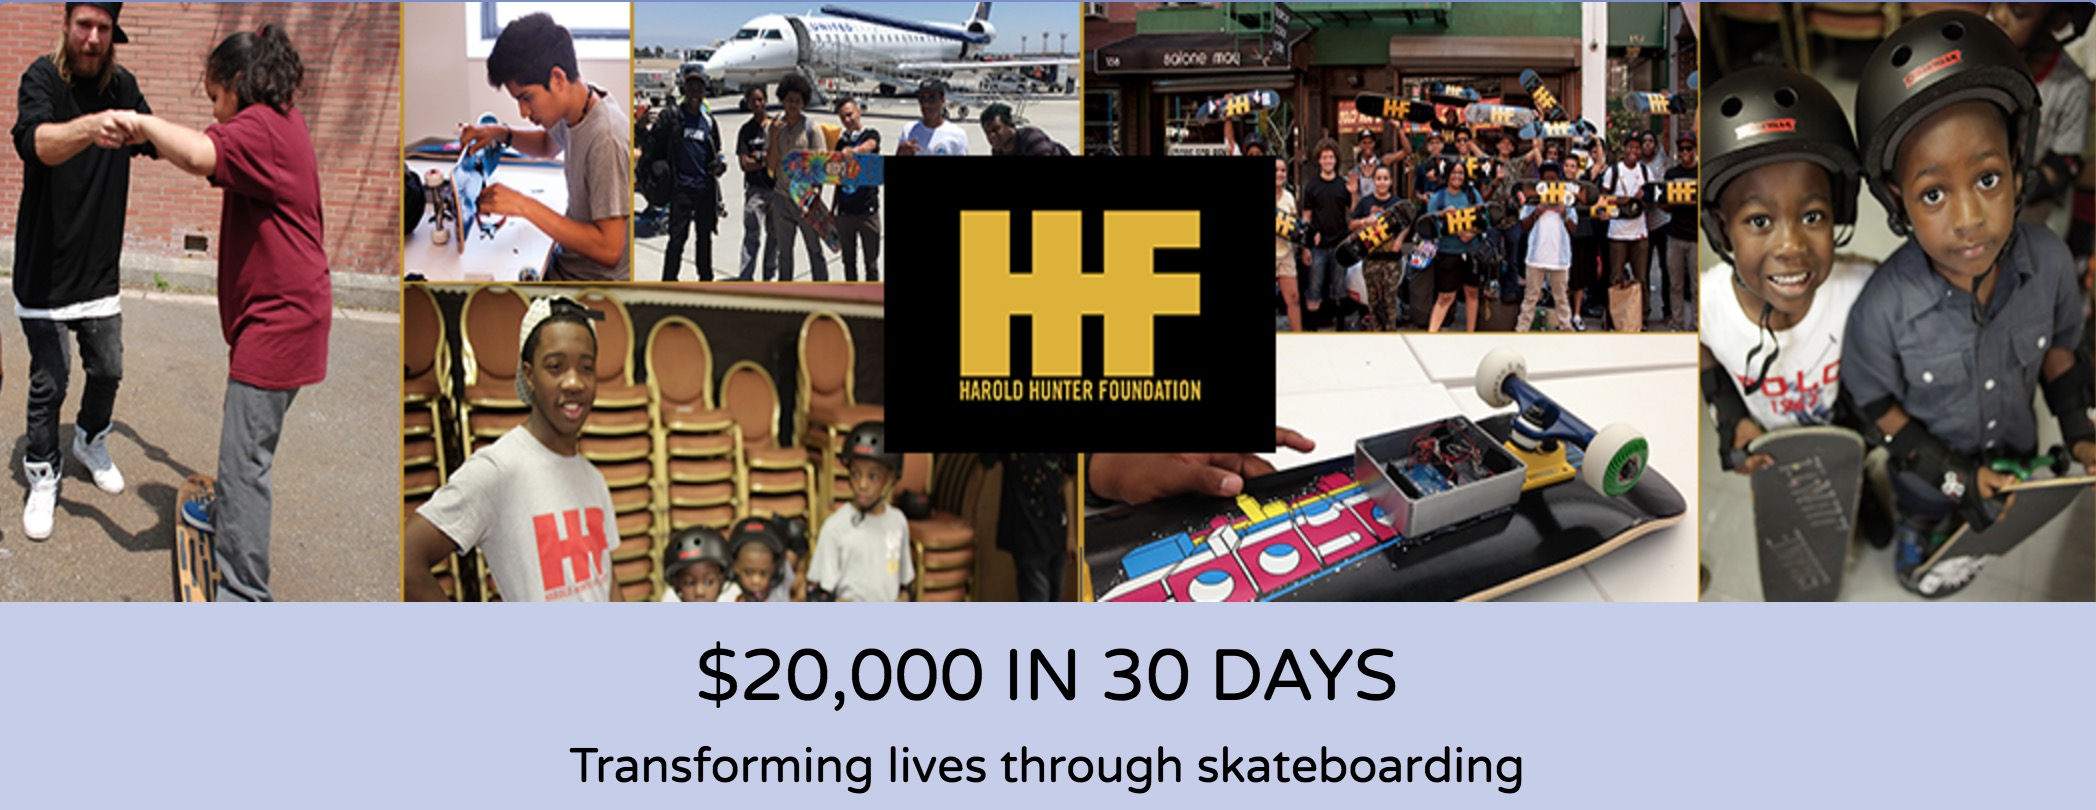 Harold Hunter Foundation Crowdfunding Campaign (2016)